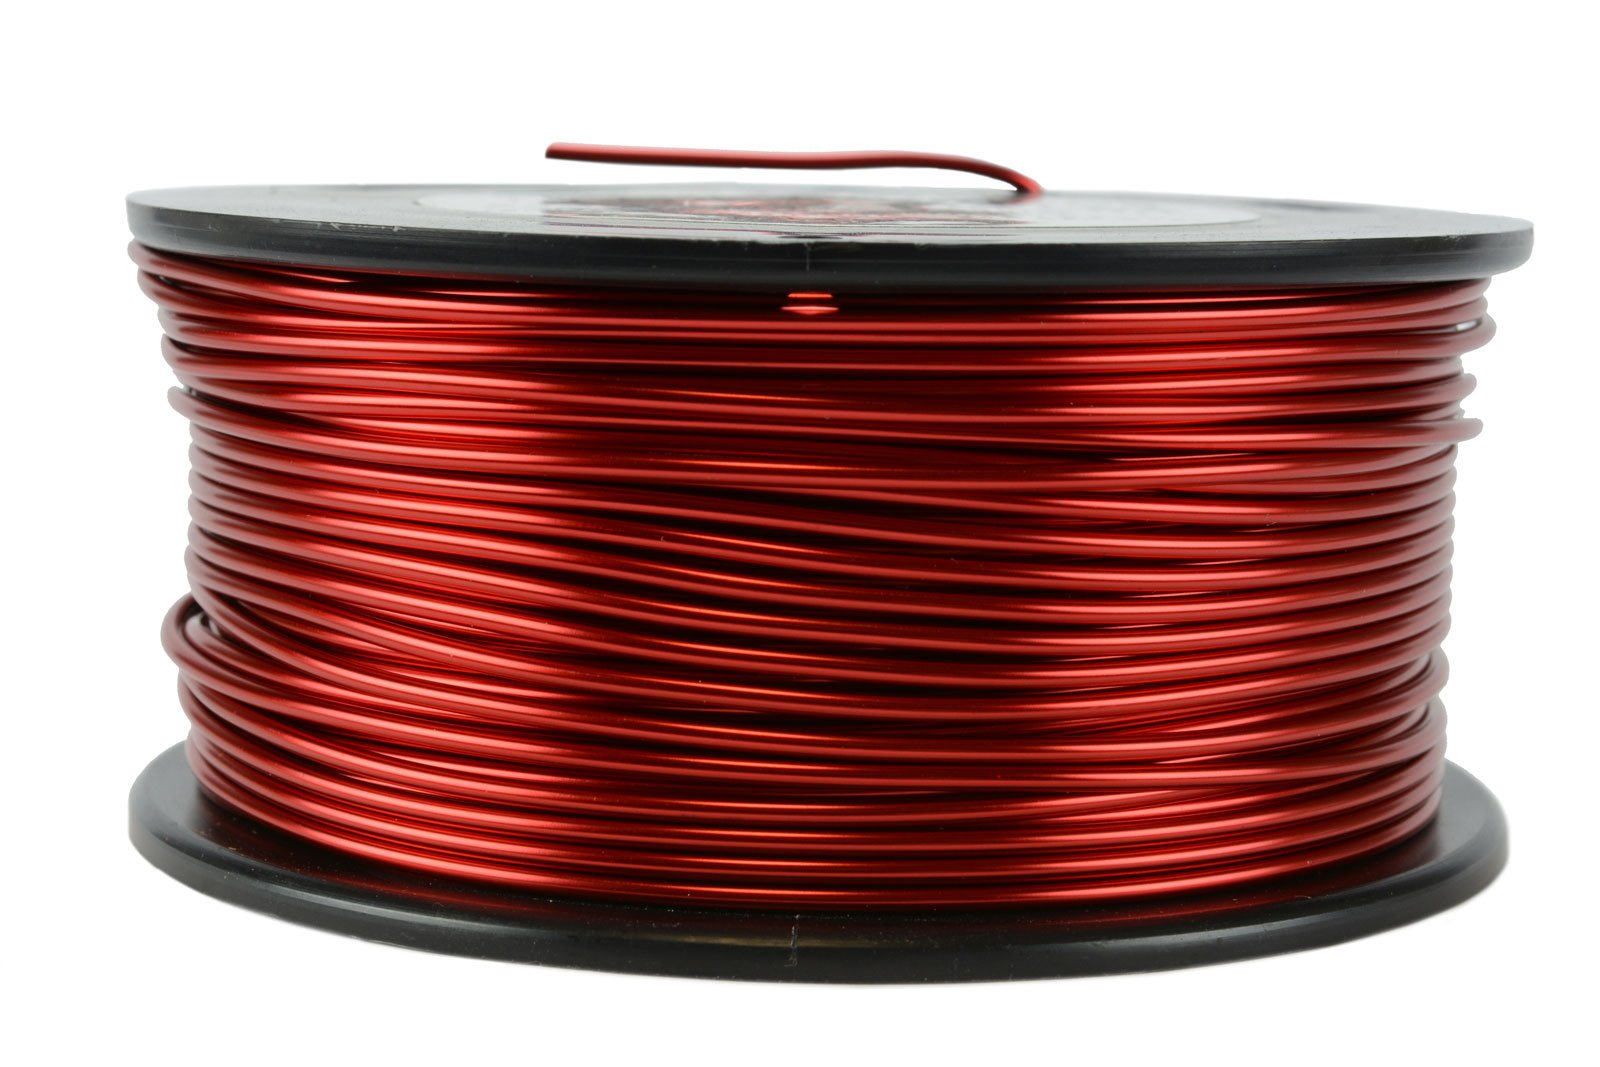 TEMCo 14 AWG Copper Magnet Wire - 1.5 lb 119 ft 155°C Magnetic Coil Red